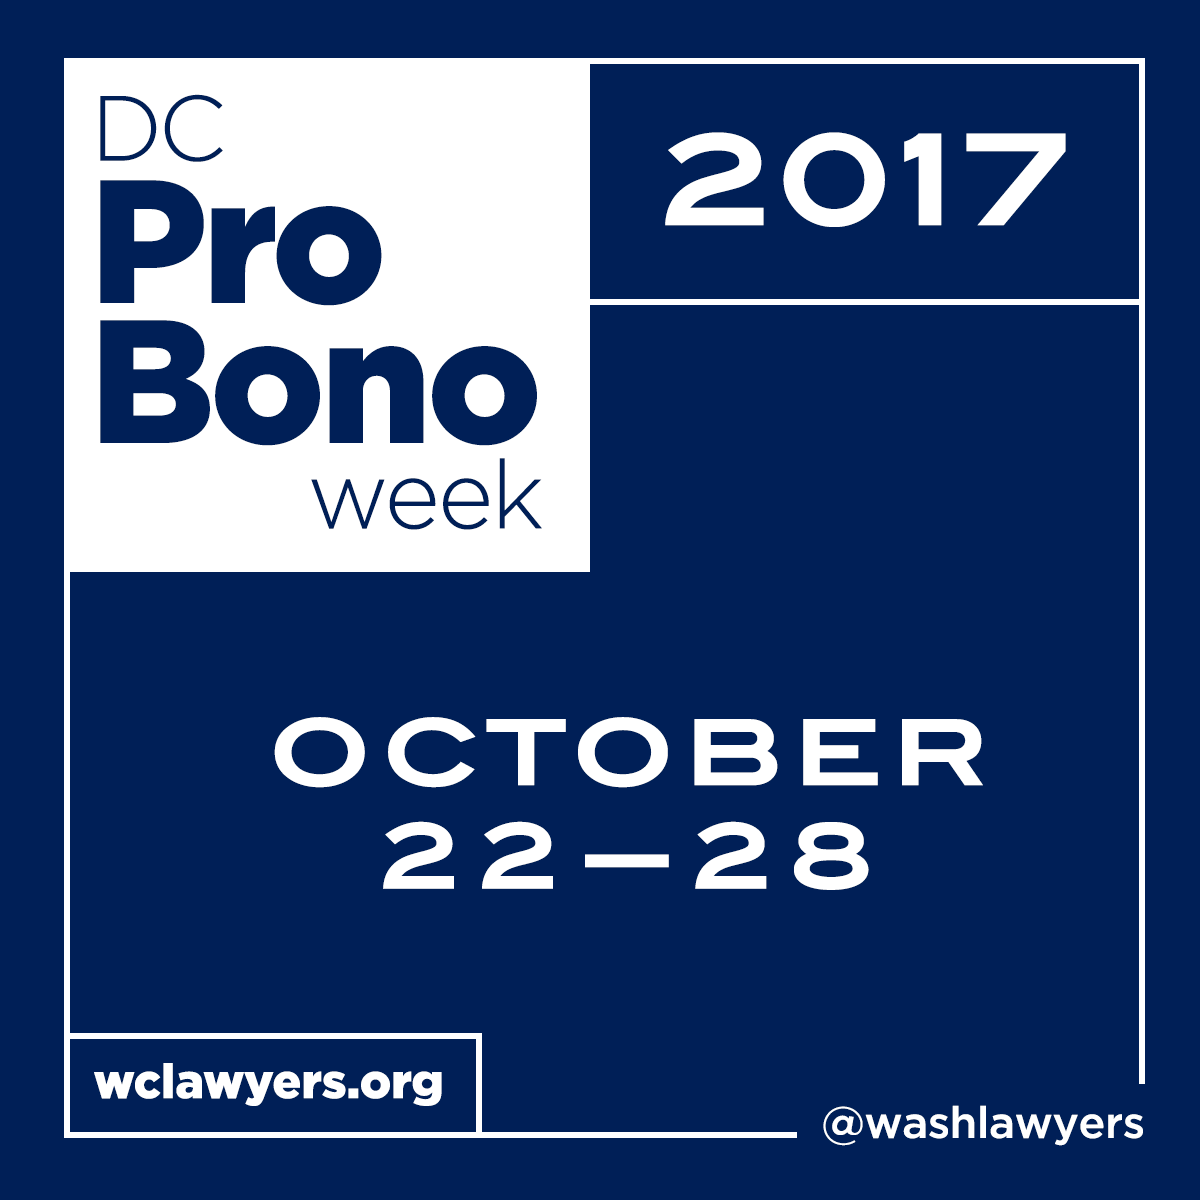 Graphic: DC Pro Bono Week 2017